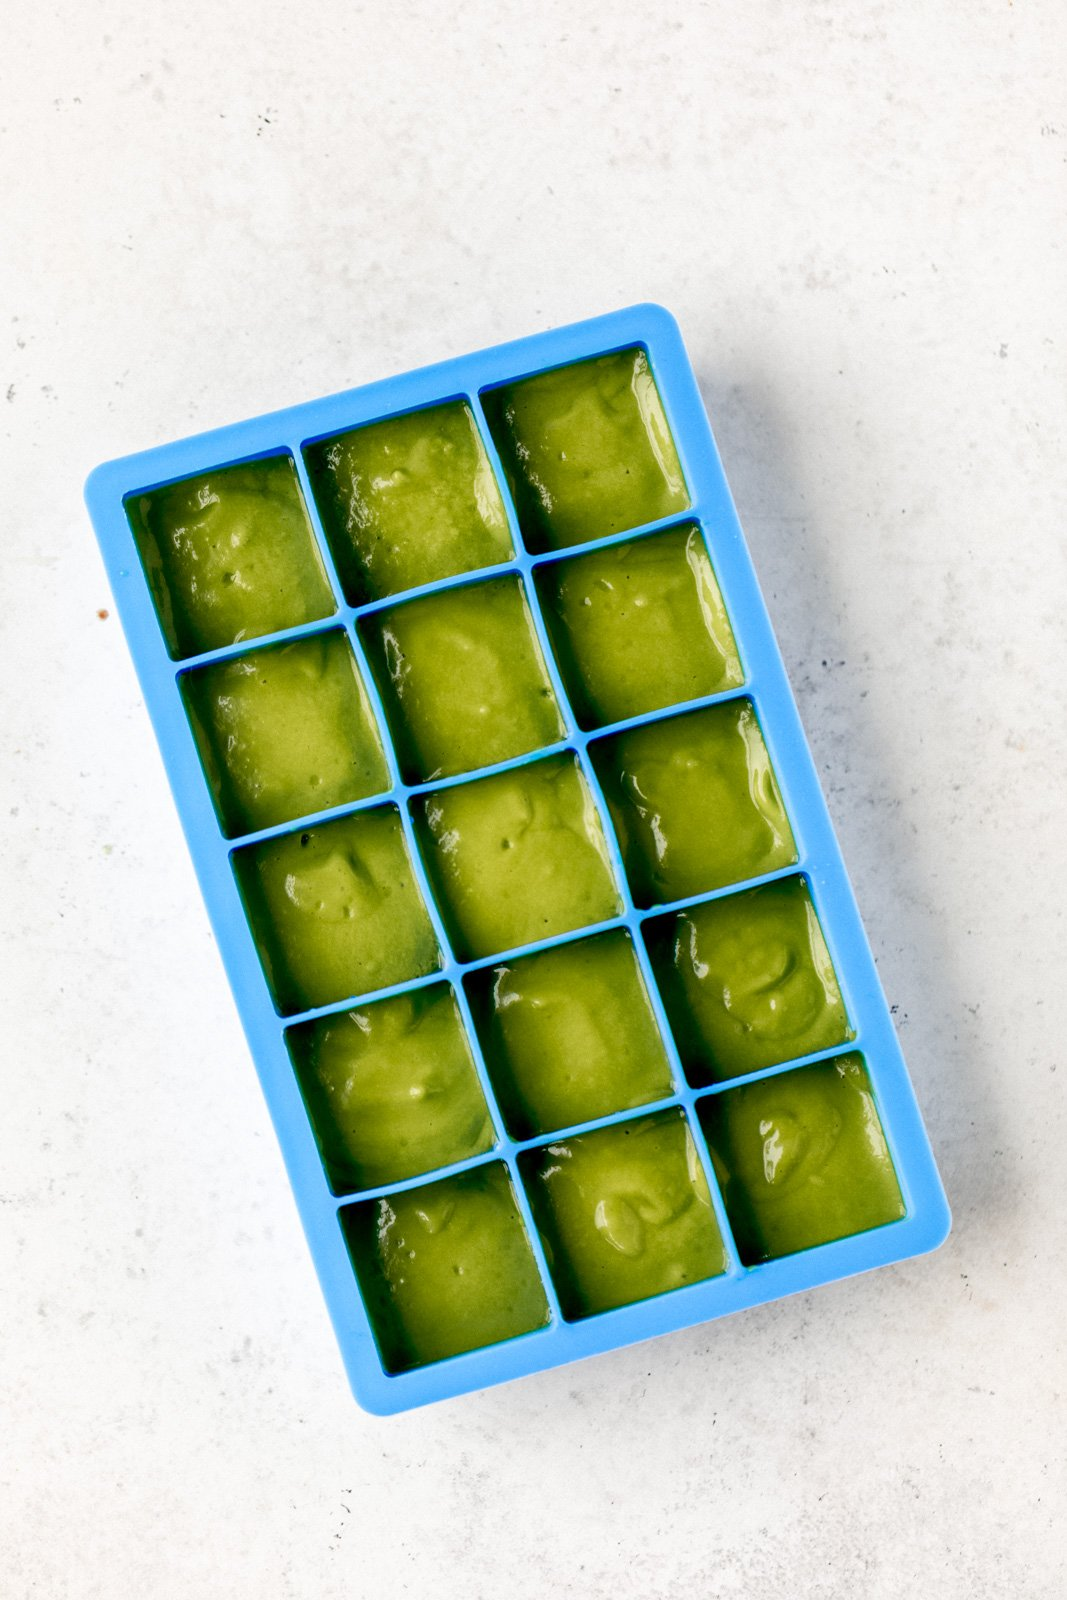 ice cube tray with green smoothie in it